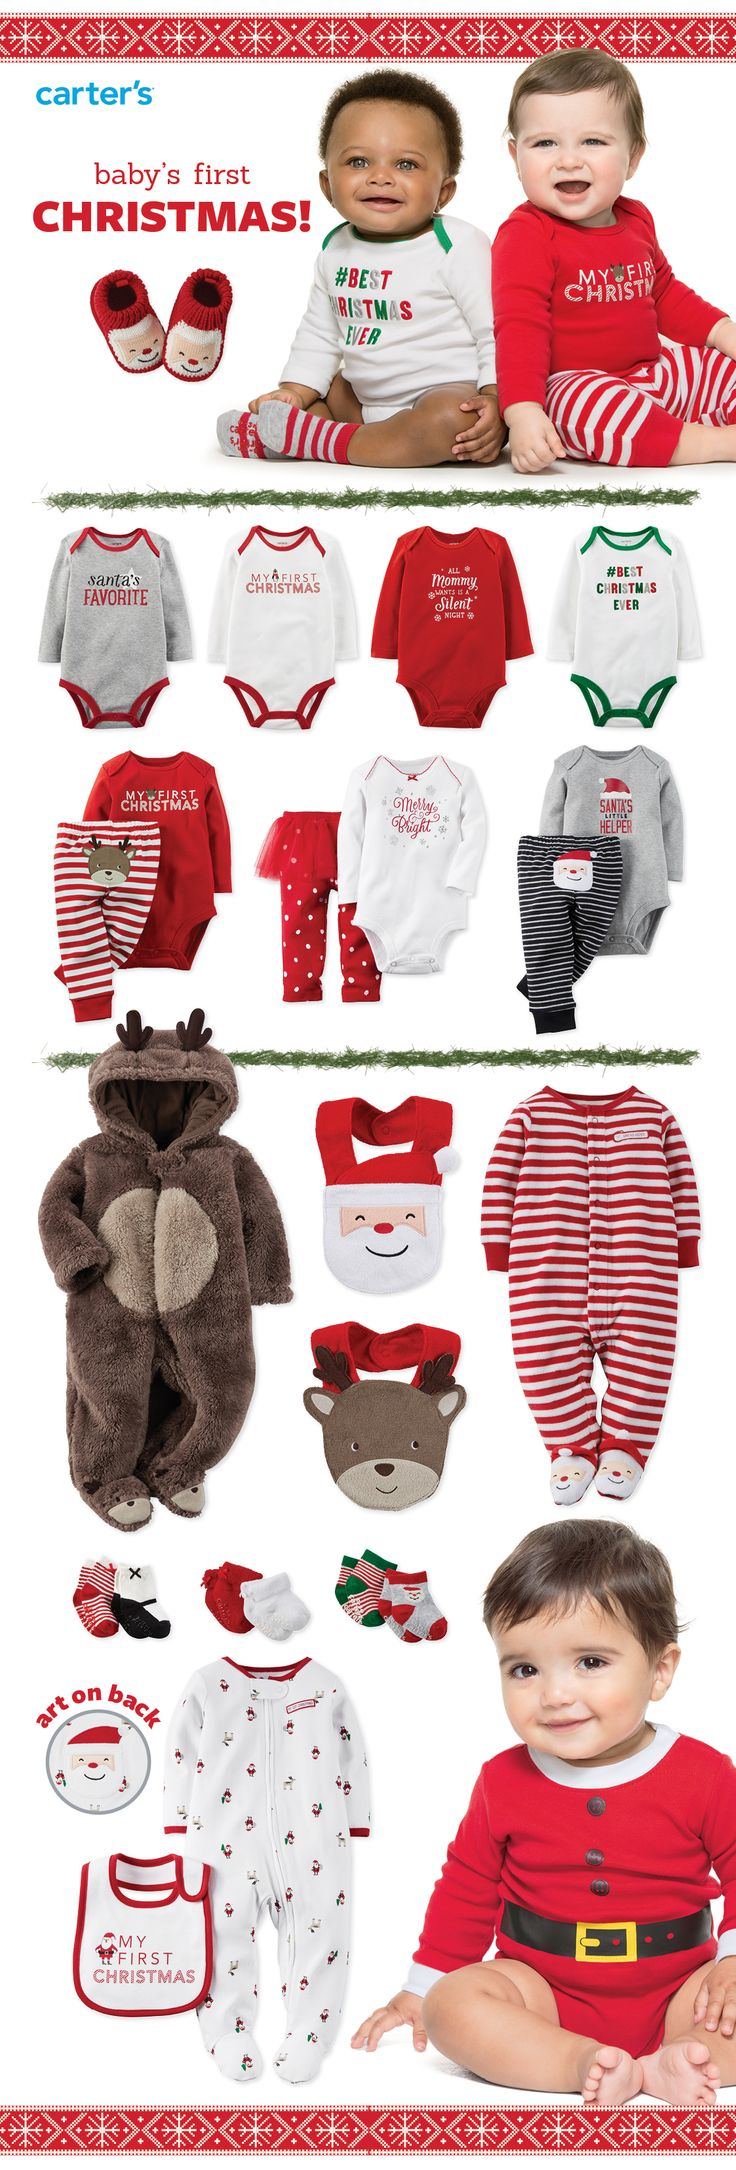 nobis coat sale Your one stop shop for baby  s first Christmas  Holiday bodysuits  Santa suits  sleep  amp  play  sets  amp  little extras  We  ve got you covered head to toe